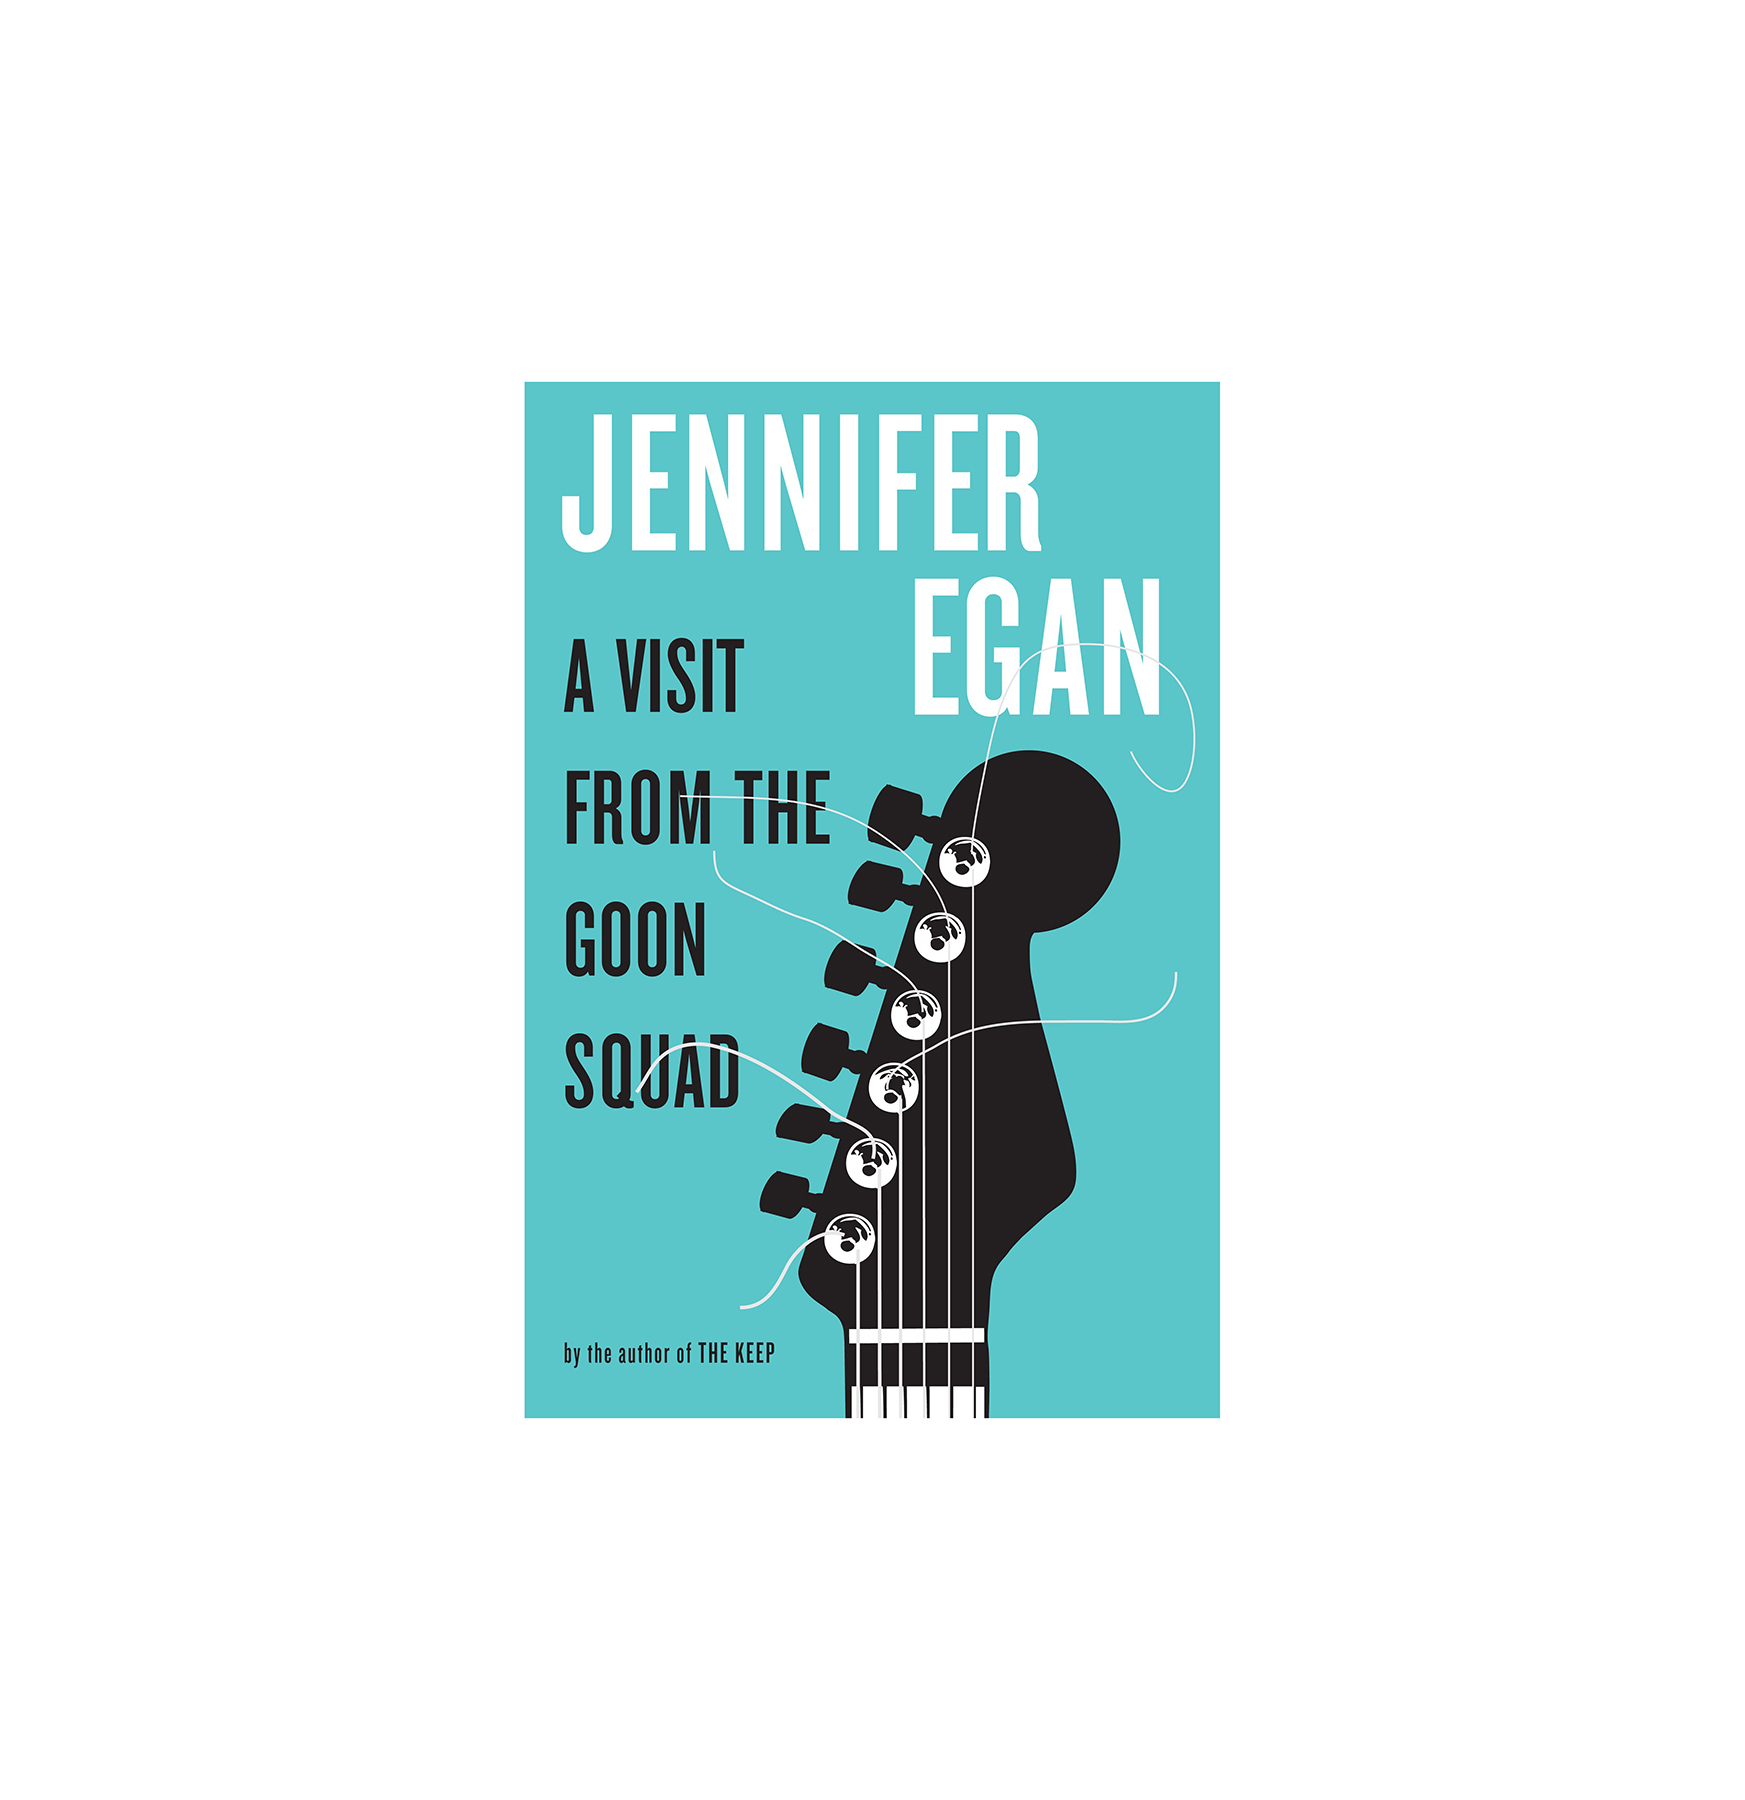 A Visit From the Goon Squad, by Jennifer Egan